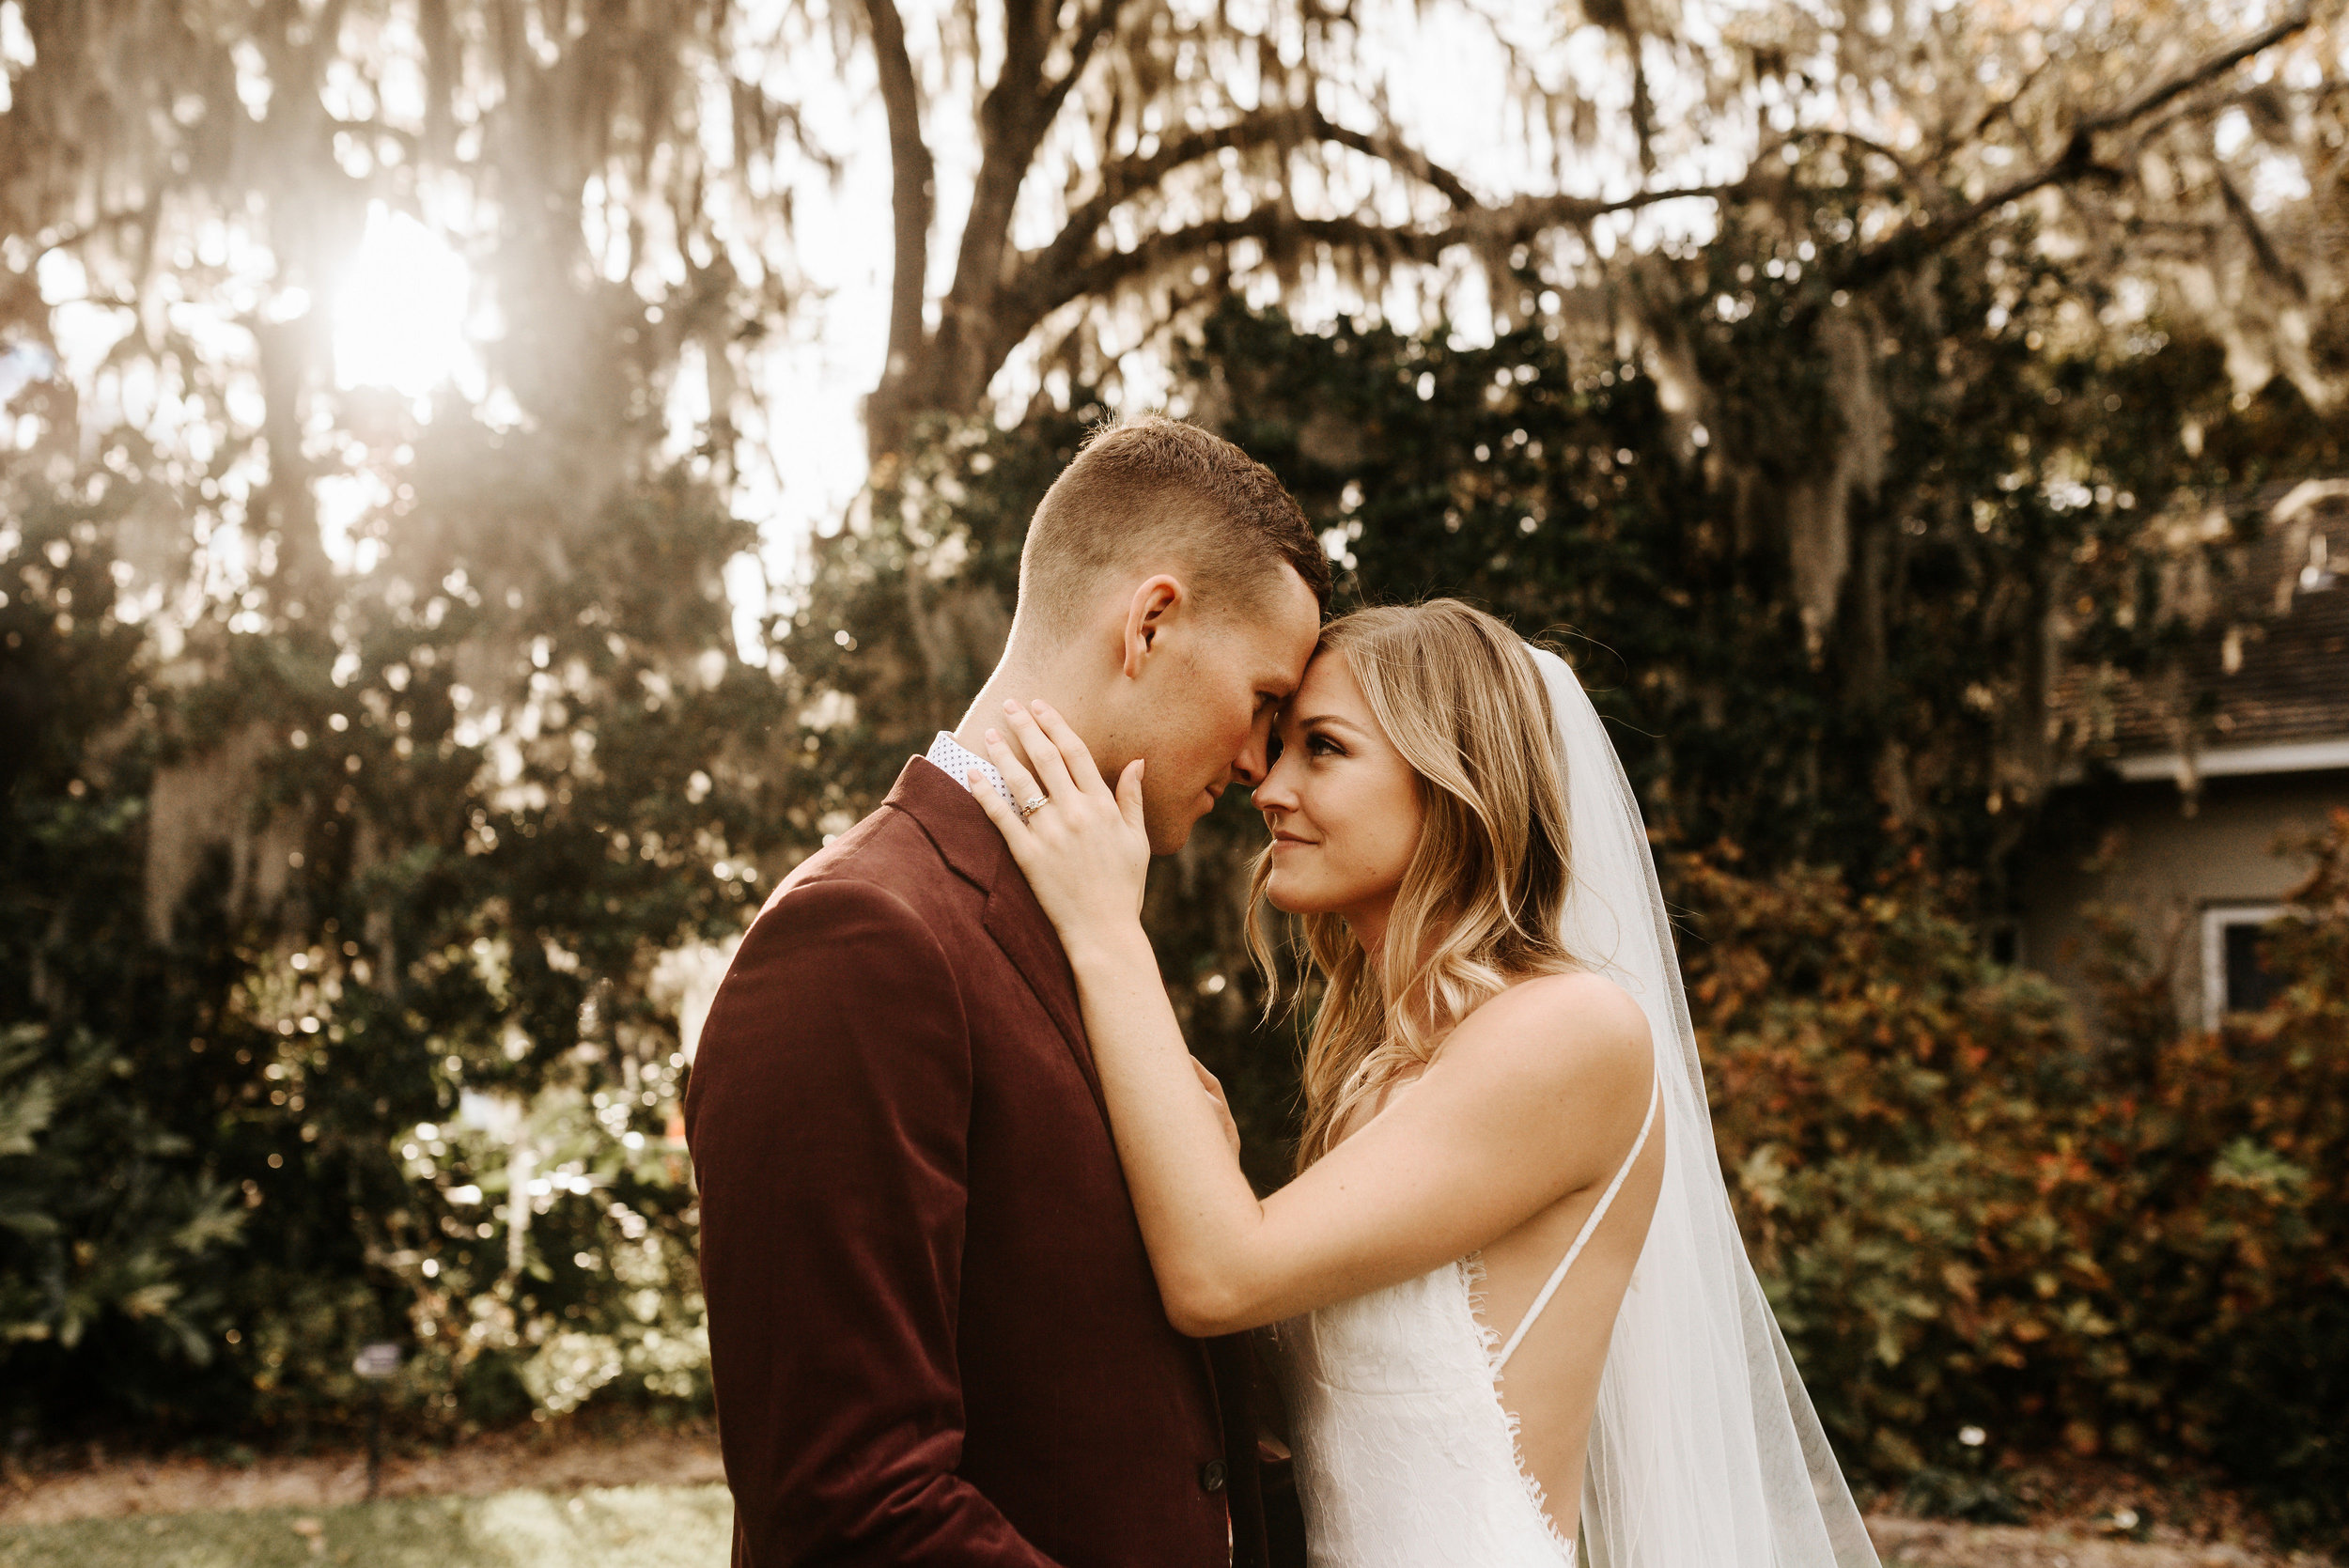 Kourtney_Sean_Savannah_Georgia_Wedding_Wormsloe_Histroic_Site_Coastal_Georgia_Botanical_Gardens_Photography_by_V_4194.jpg